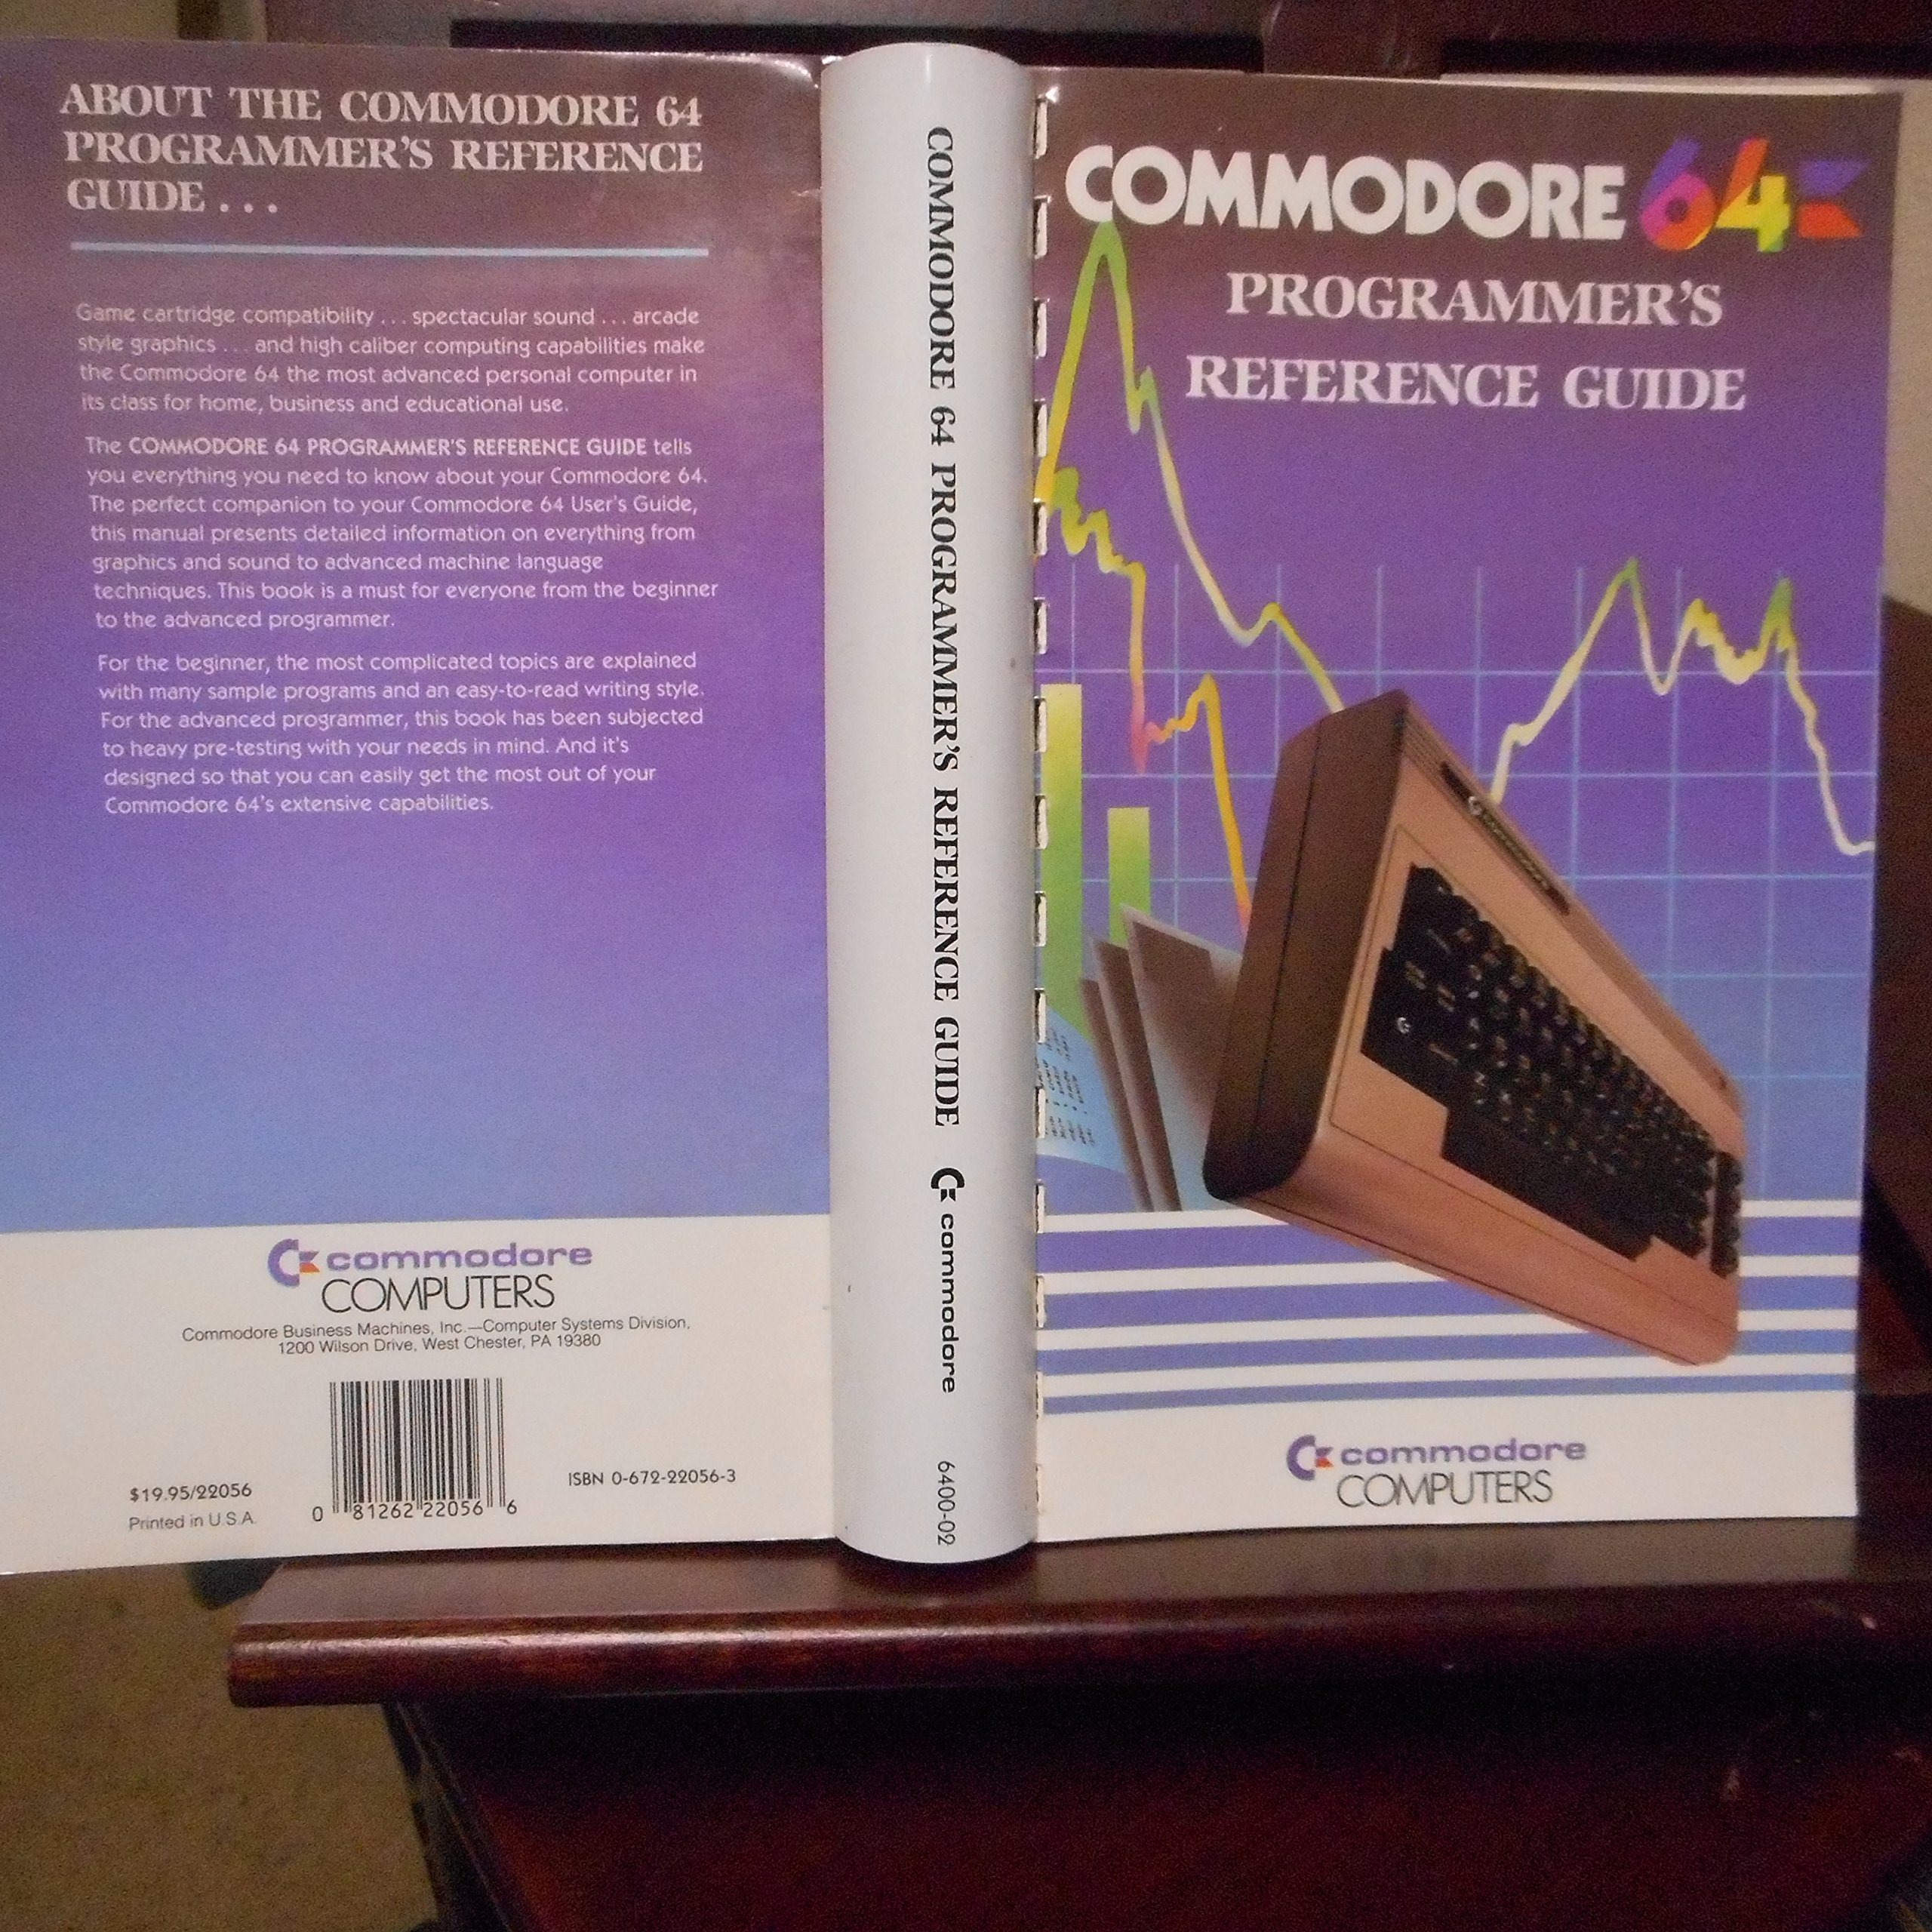 Commodore 64: Programmer's Reference Guide: Commodore Computers